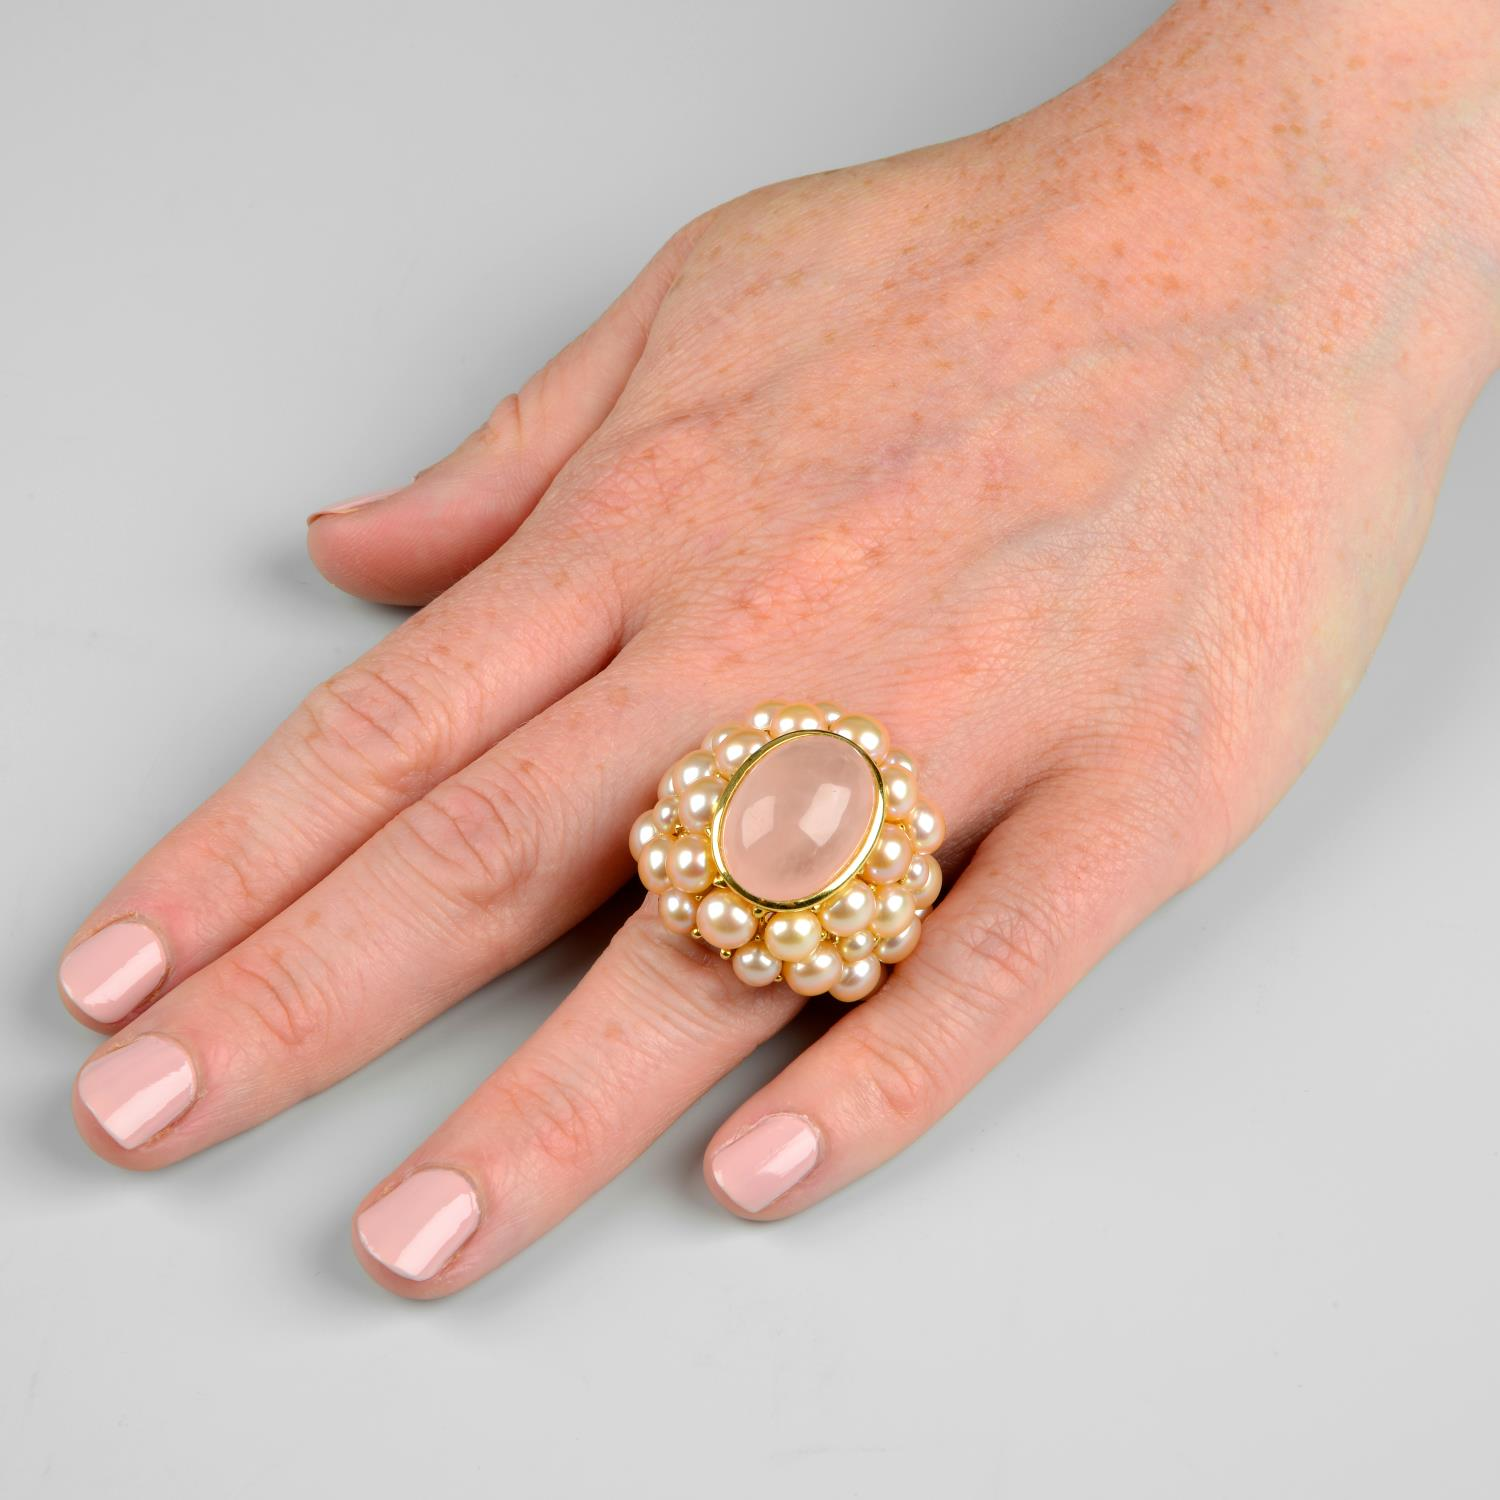 A rose quartz cabochon and pink cultured pearl cocktail ring, by Mimi.Signed Mimi.Stamped 750. - Image 3 of 6